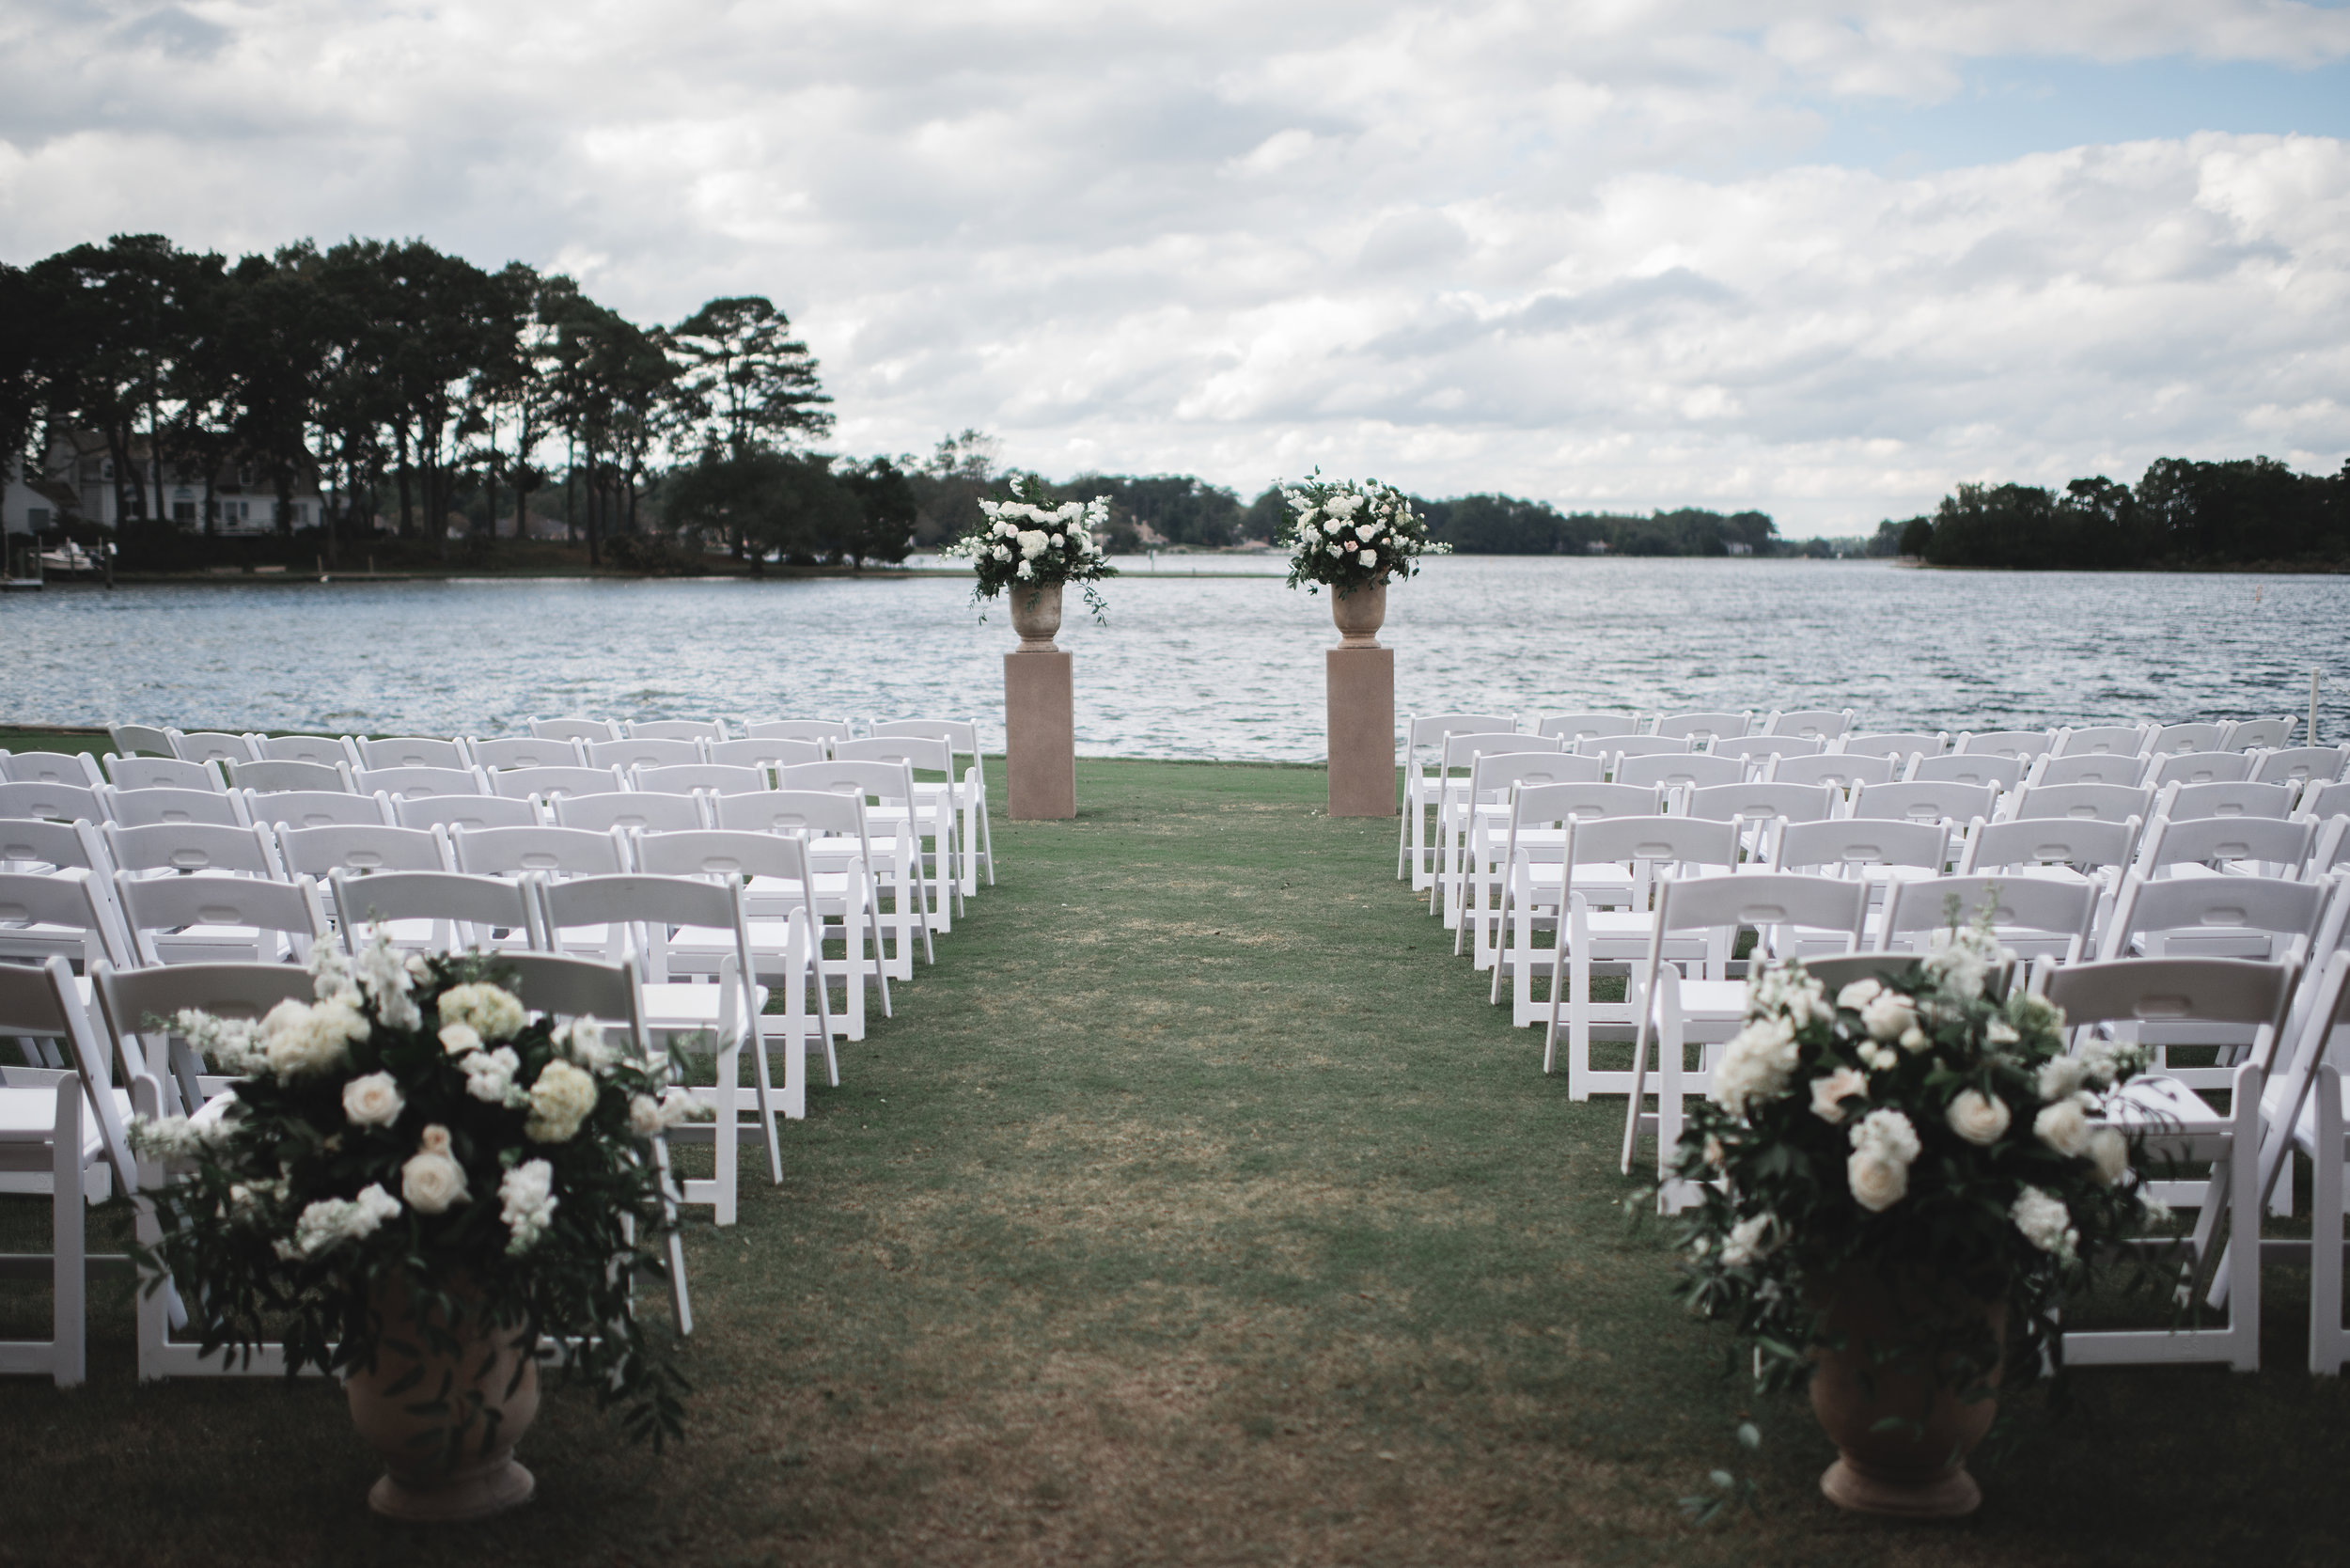 Courtney Inghram Virginia Beach Cavalier Wedding Florist